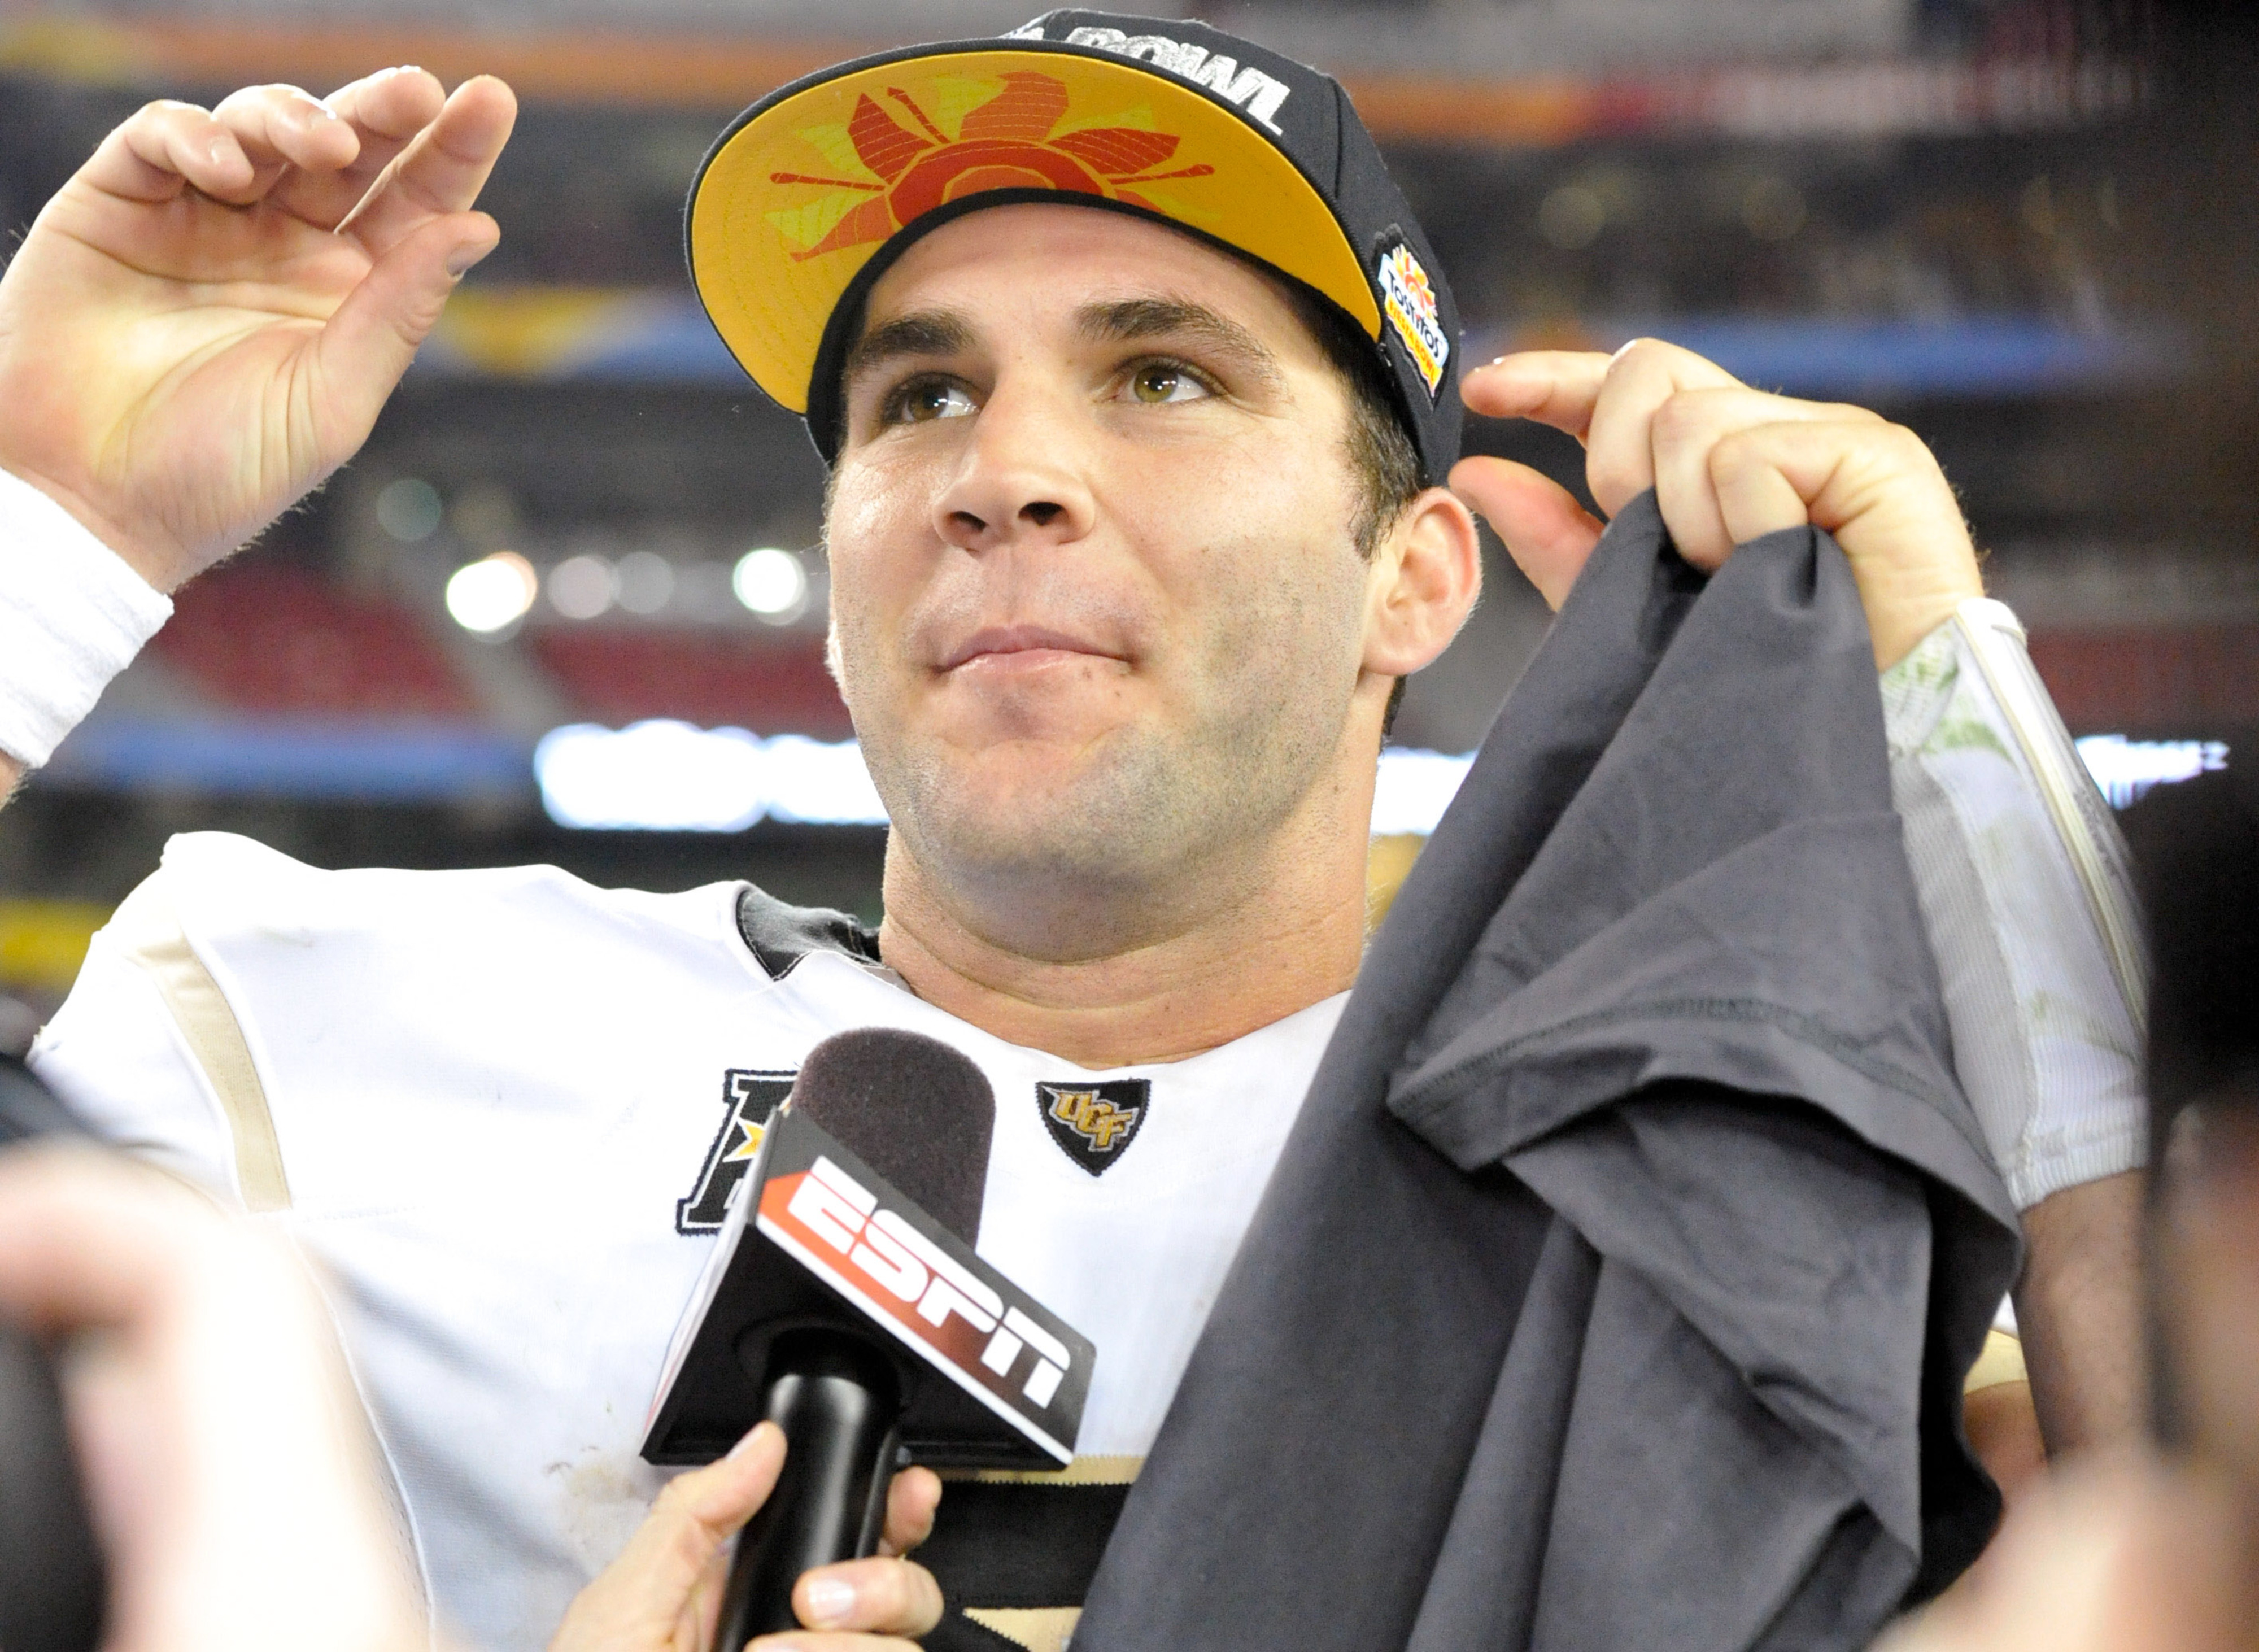 Blake Bortles, you're the most-selected player in the final Daily Norseman Mock Draft Database of 2014! How do you feel?